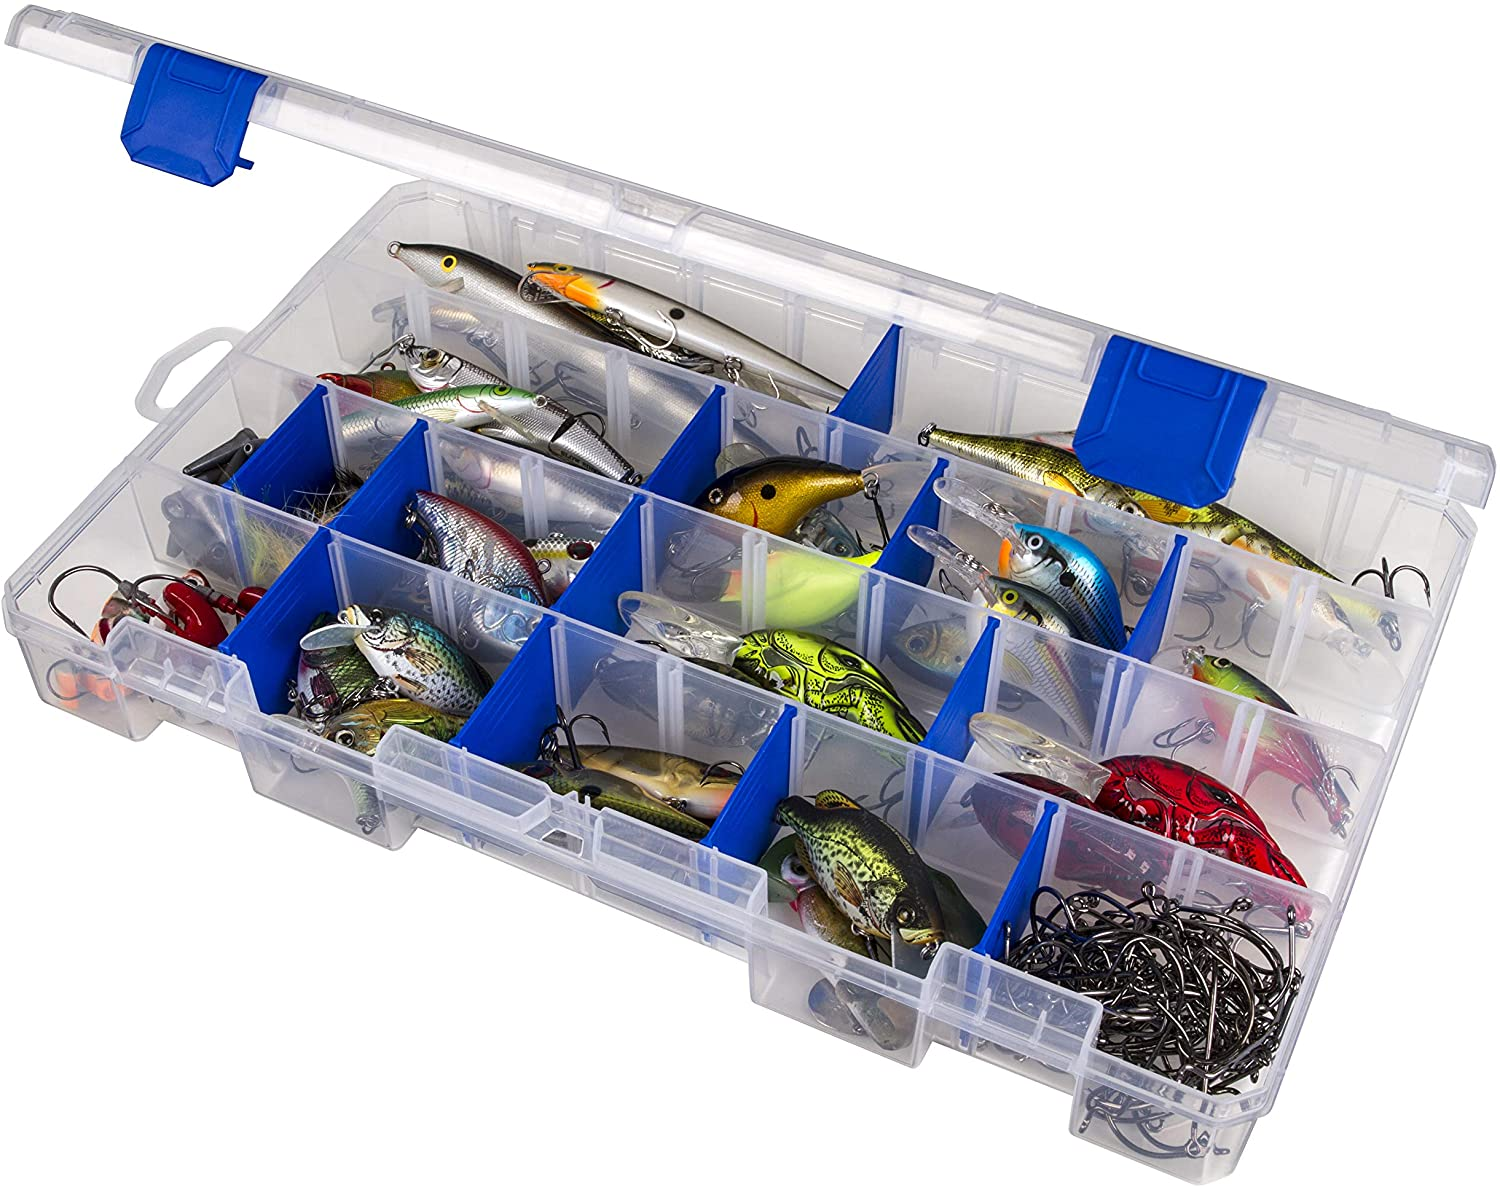 Flambeau Outdoors 5007 Tuff Tainer - 36 Compartments (Includes (18) Zerust Dividers): Sports & Outdoors